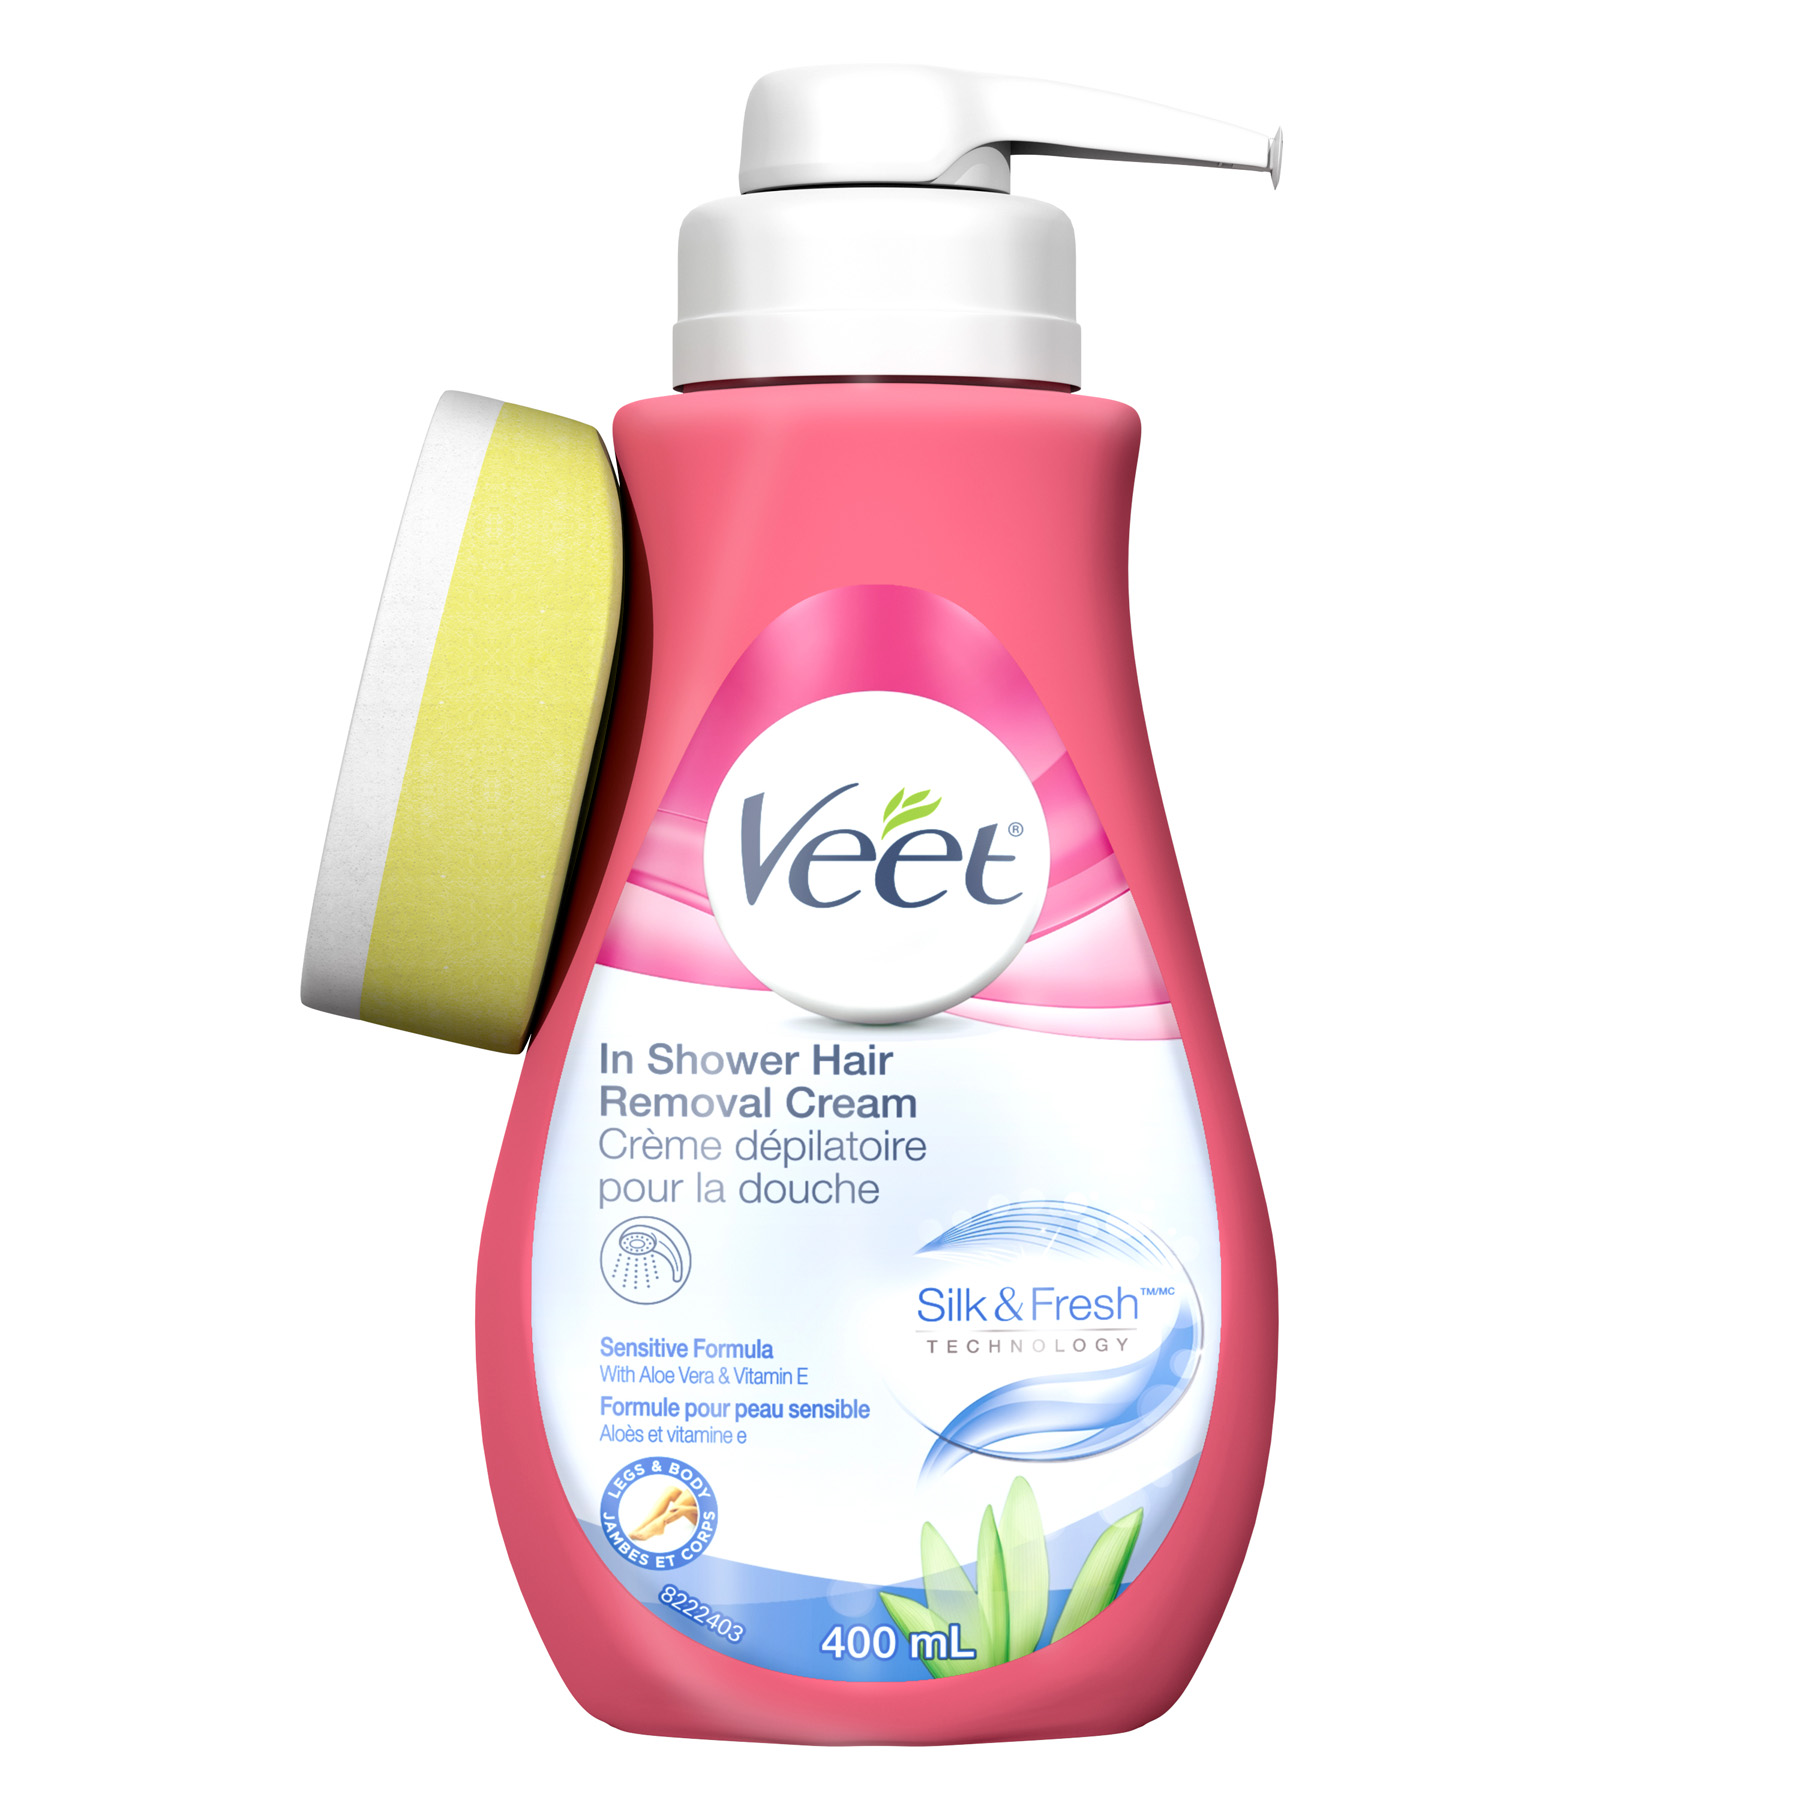 VEET® In Shower Hair Removal Cream Silk & Fresh™ - Sensitive Formula with Aloe Vera & Vitamin E